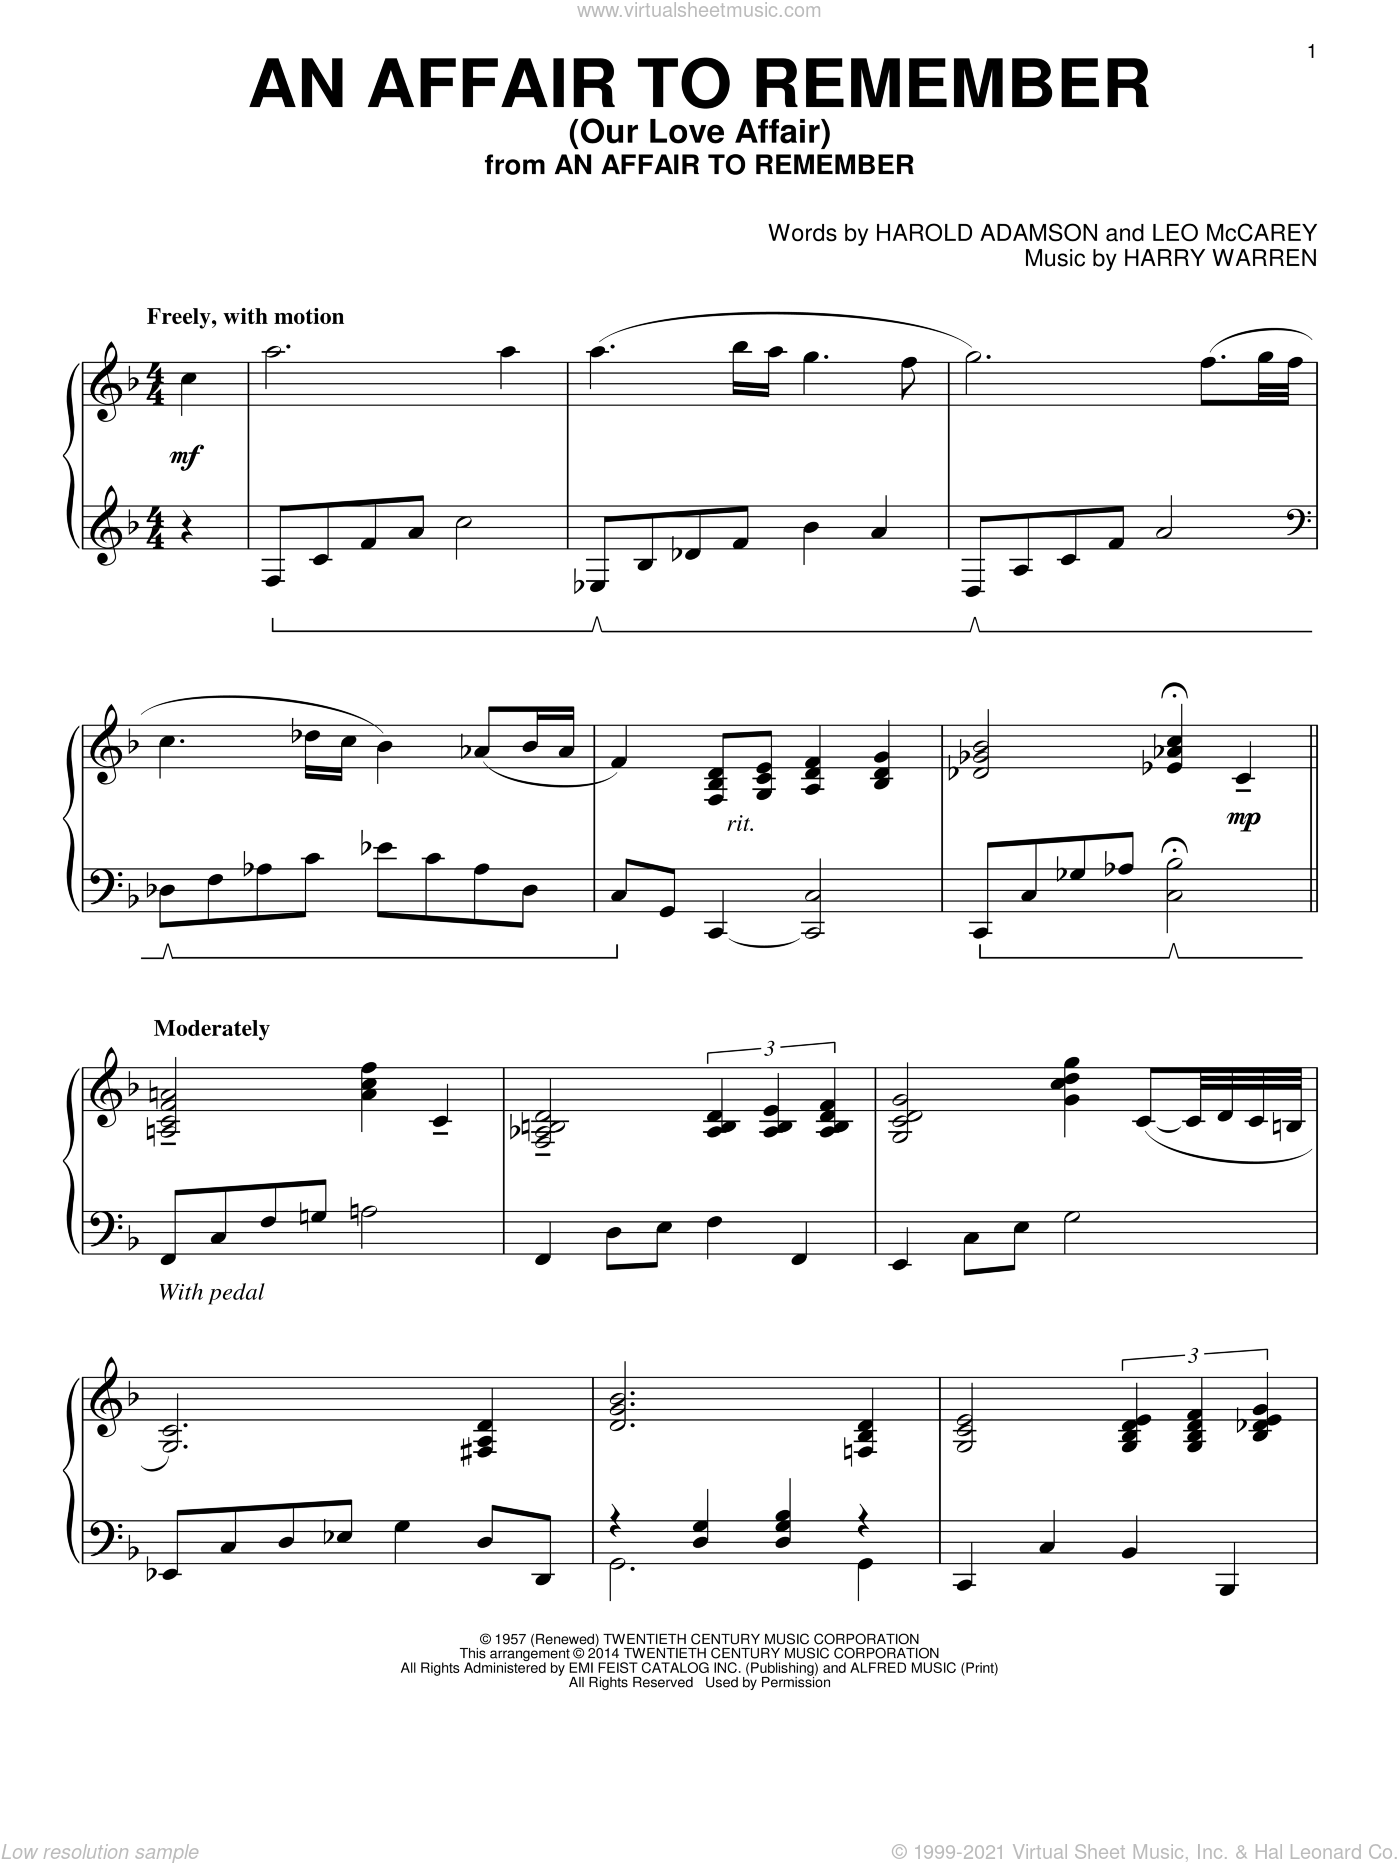 An Affair To Remember (Our Love Affair) sheet music for piano solo by Harry Warren, Harold Adamson and Leo McCarey, intermediate skill level